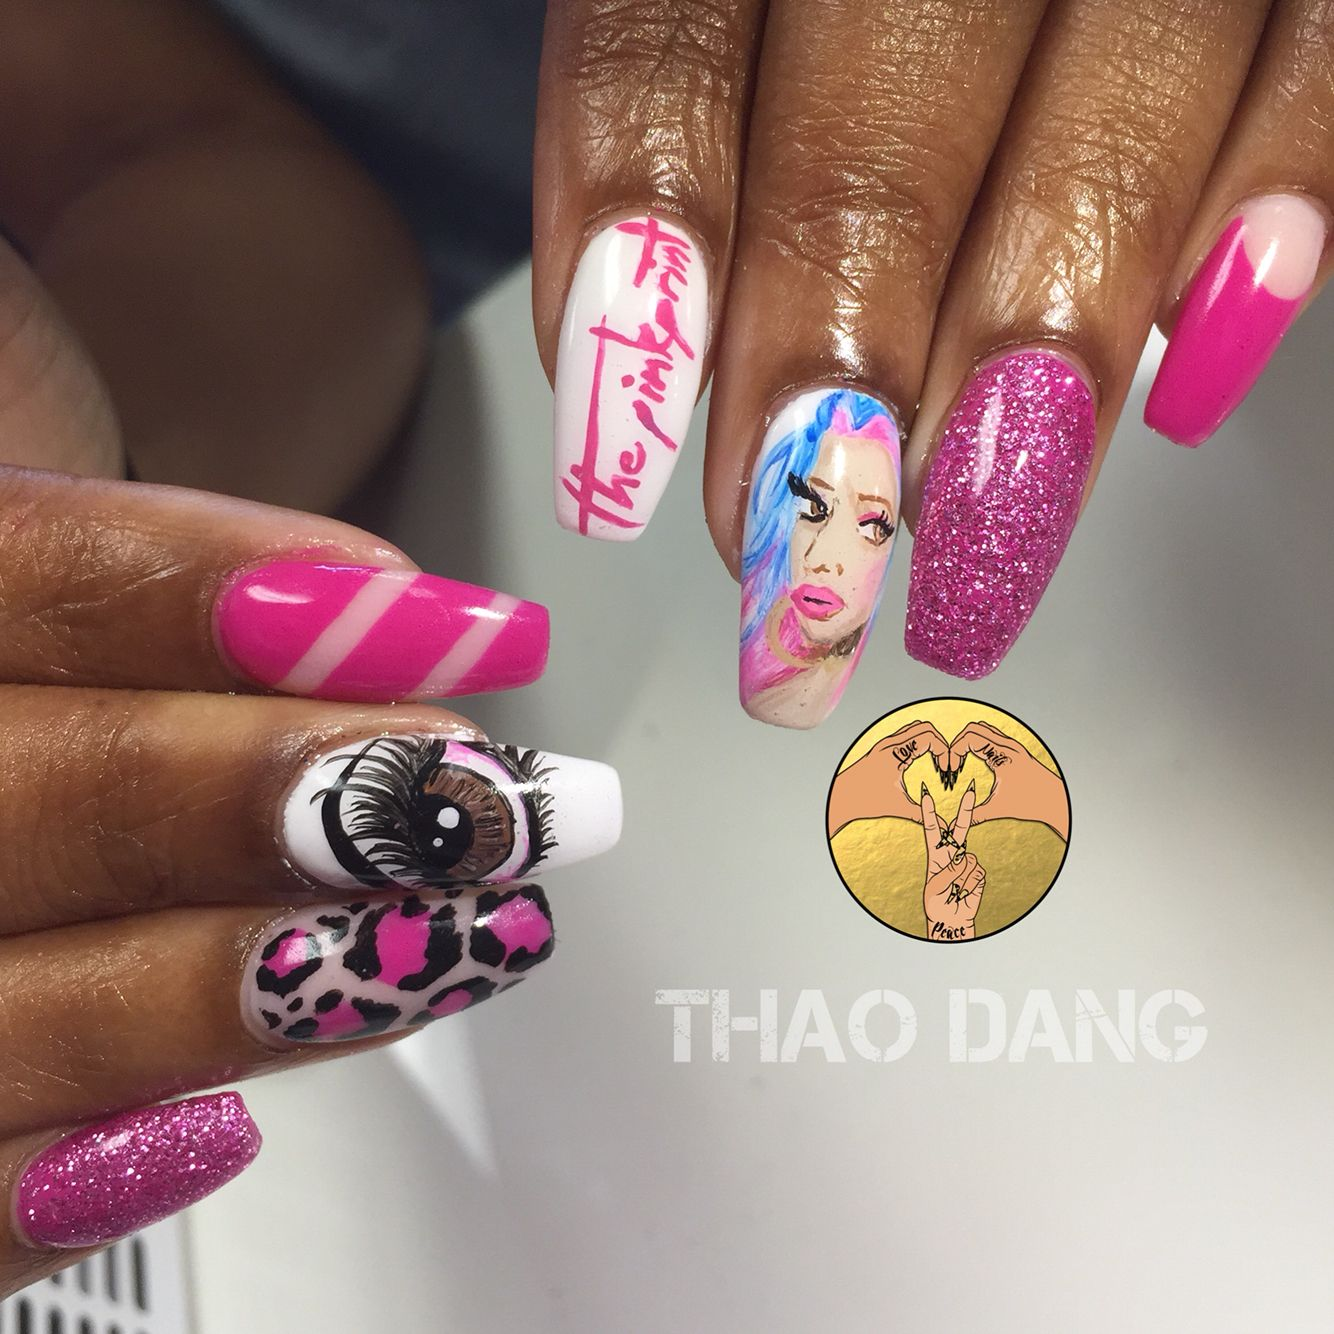 Nicki Minaj Nail Art | Nail Art | Pinterest | Nicki minaj and Beauty ...